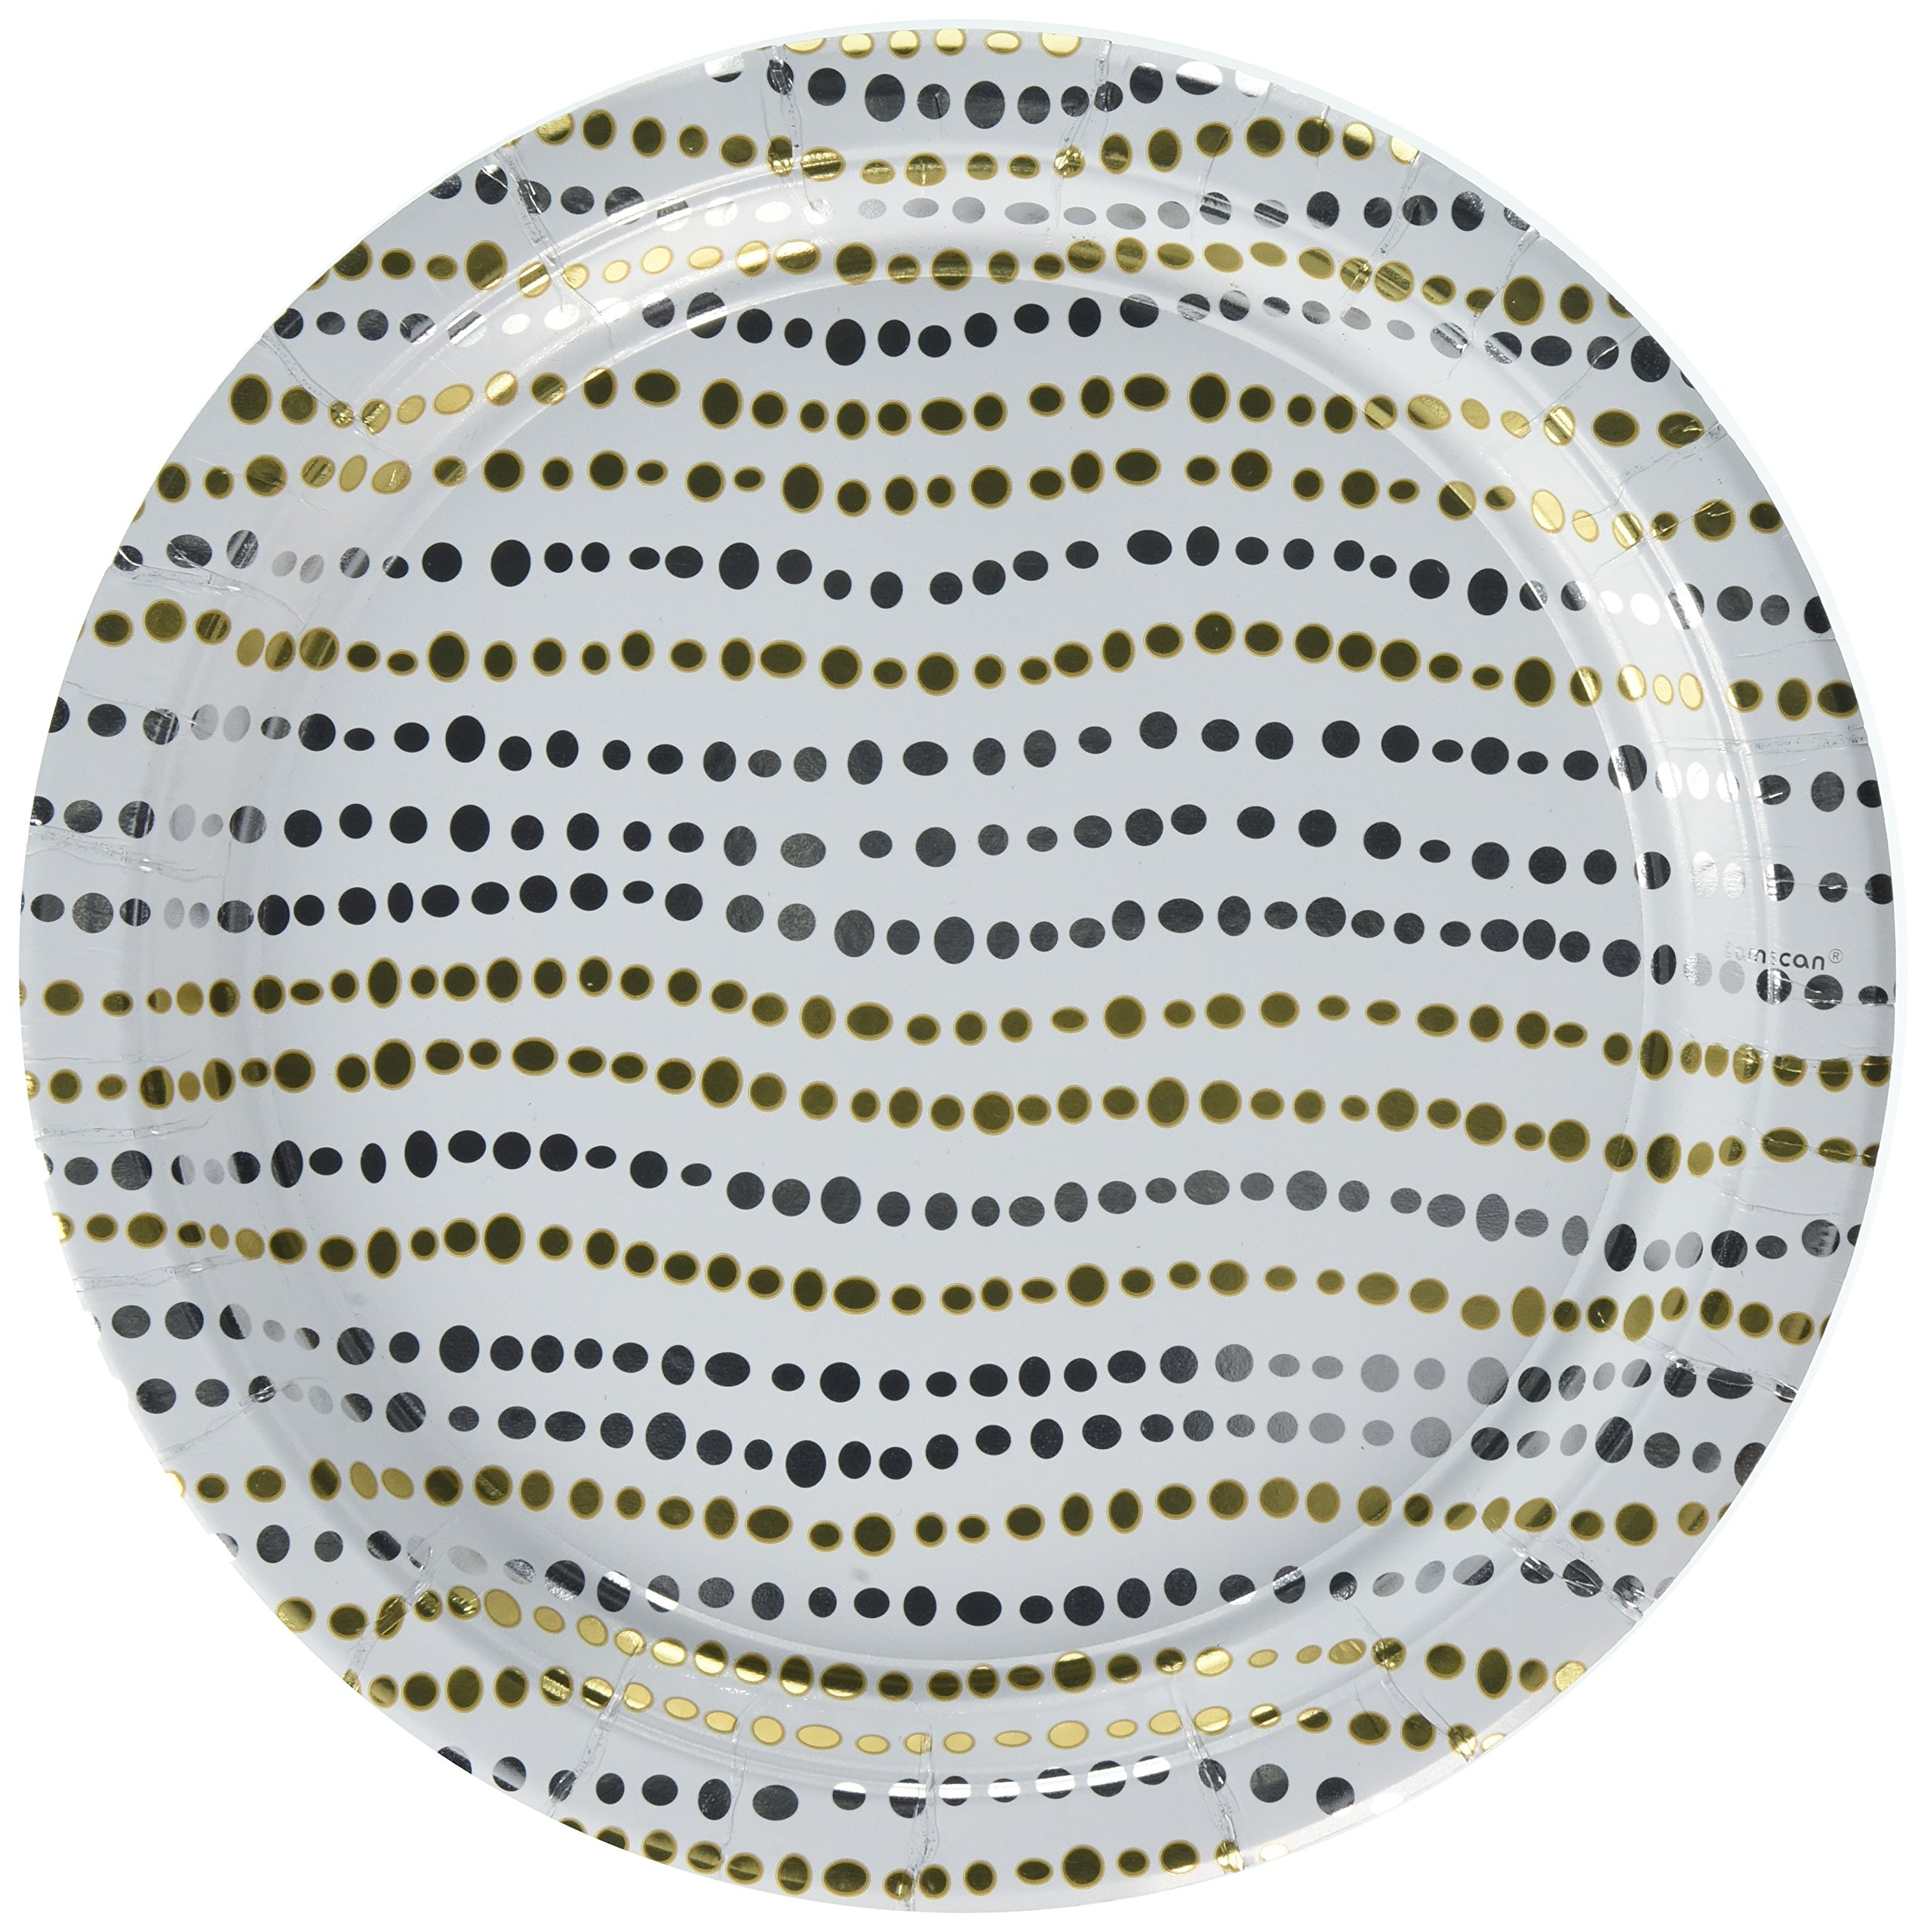 Amscan Disposable Party Round Dinner Plates Tableware, Metallic, Paper, 10'', Pack of 8 Others Supplies , 96 Pieces by Amscan